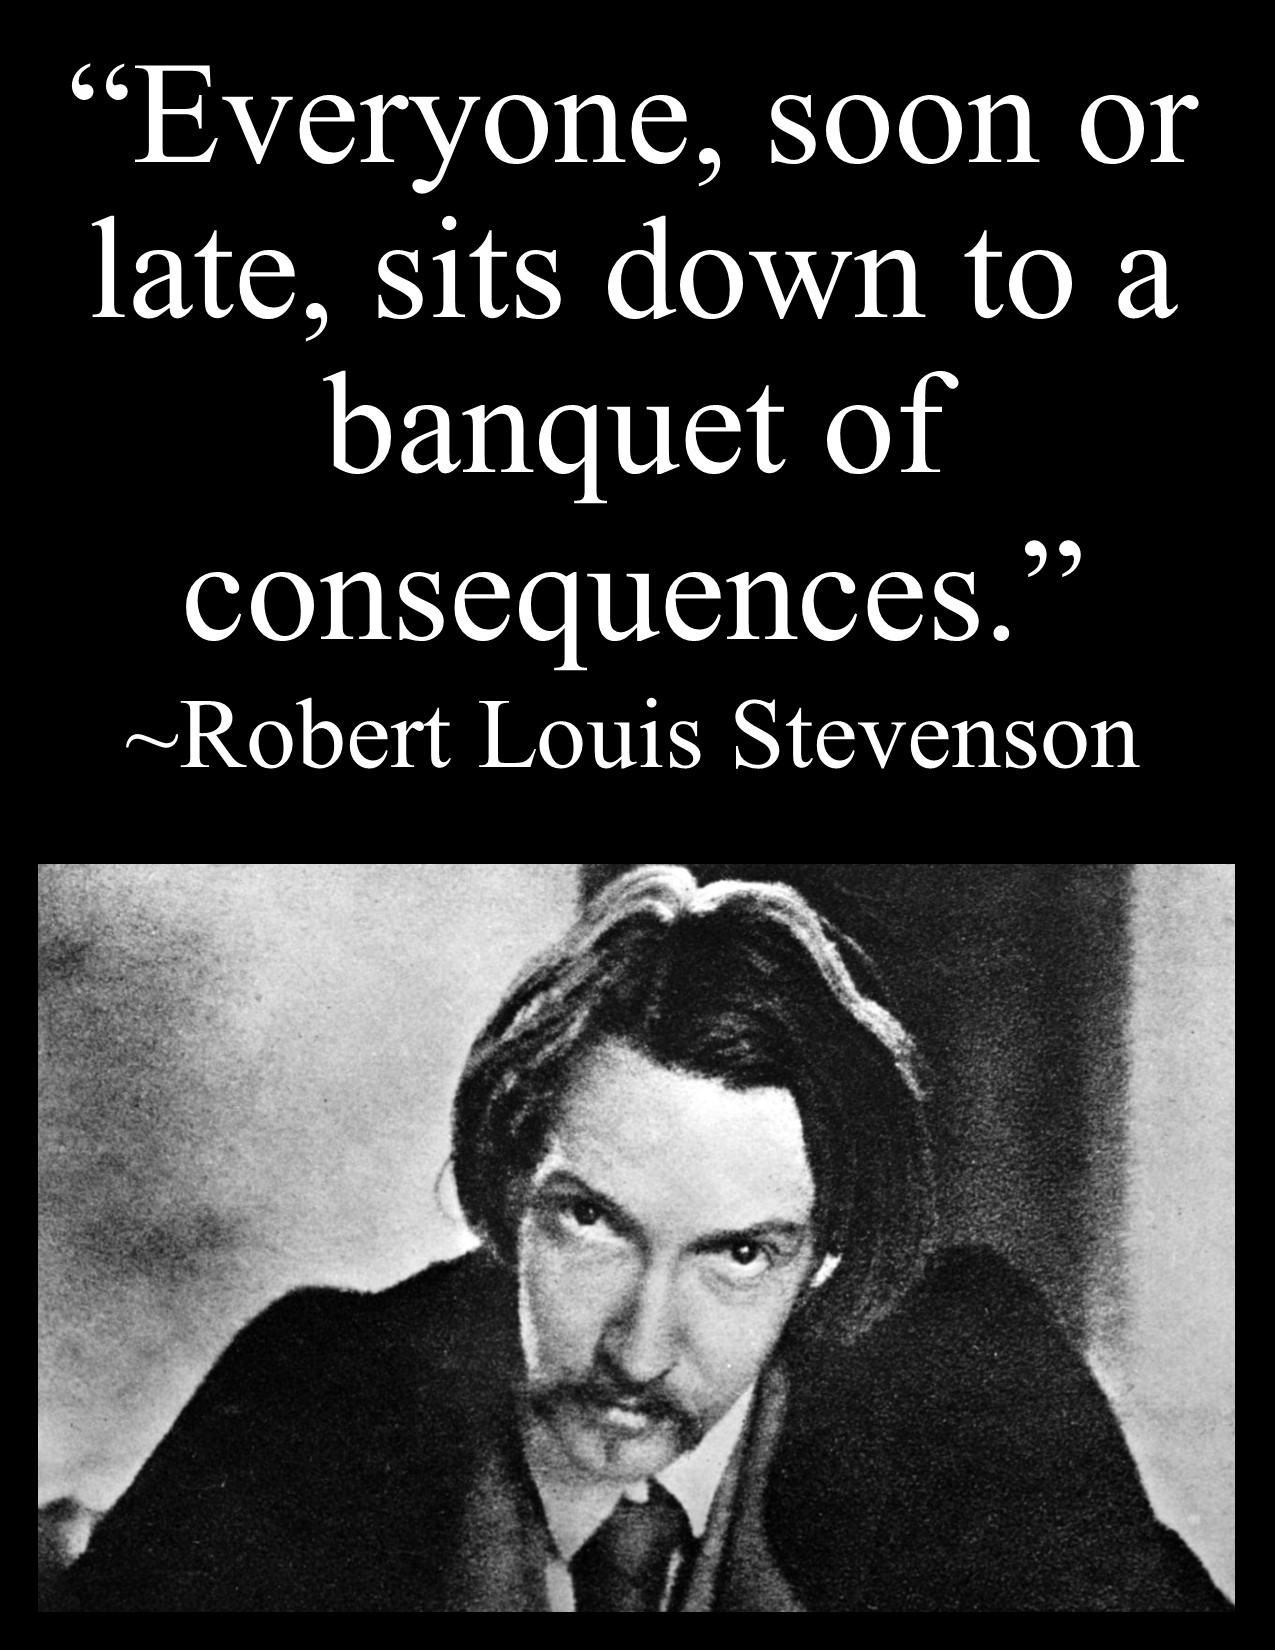 """Everyone, soon or late, sits down to a banquet of consequences."" ~Robert Louis Stevenson [OC] [1275×1650]"